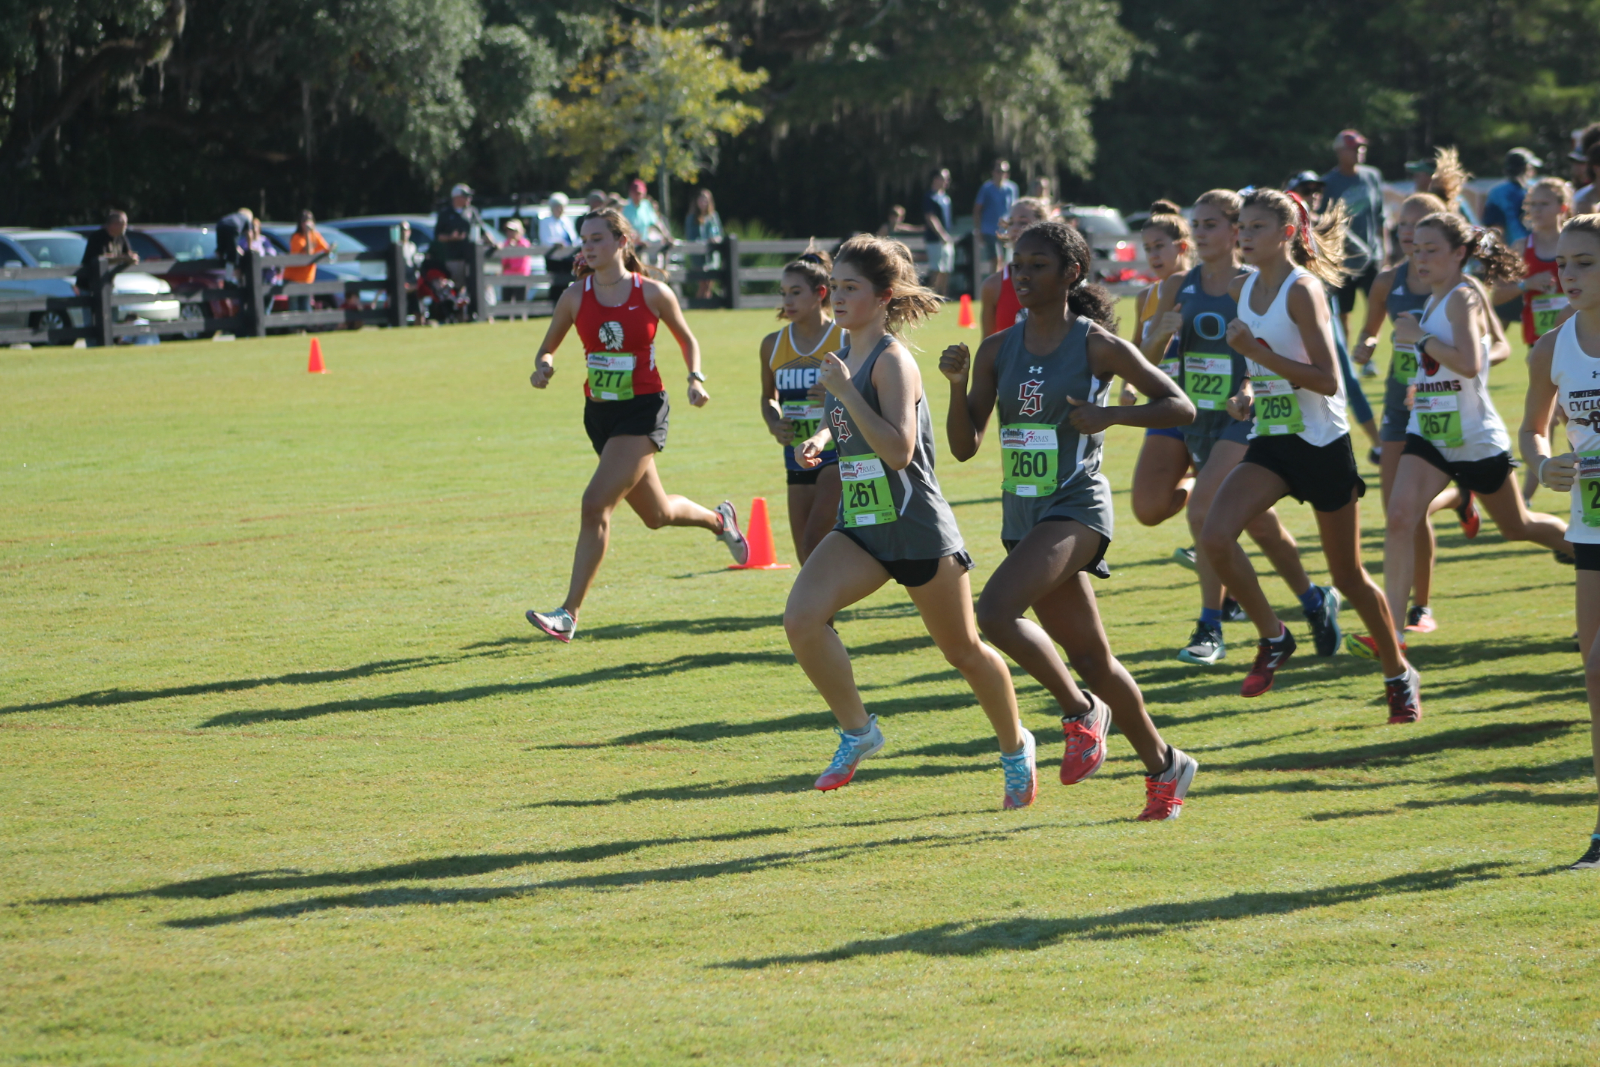 Waccamaw Warrior Invite – First Big Test For Knights